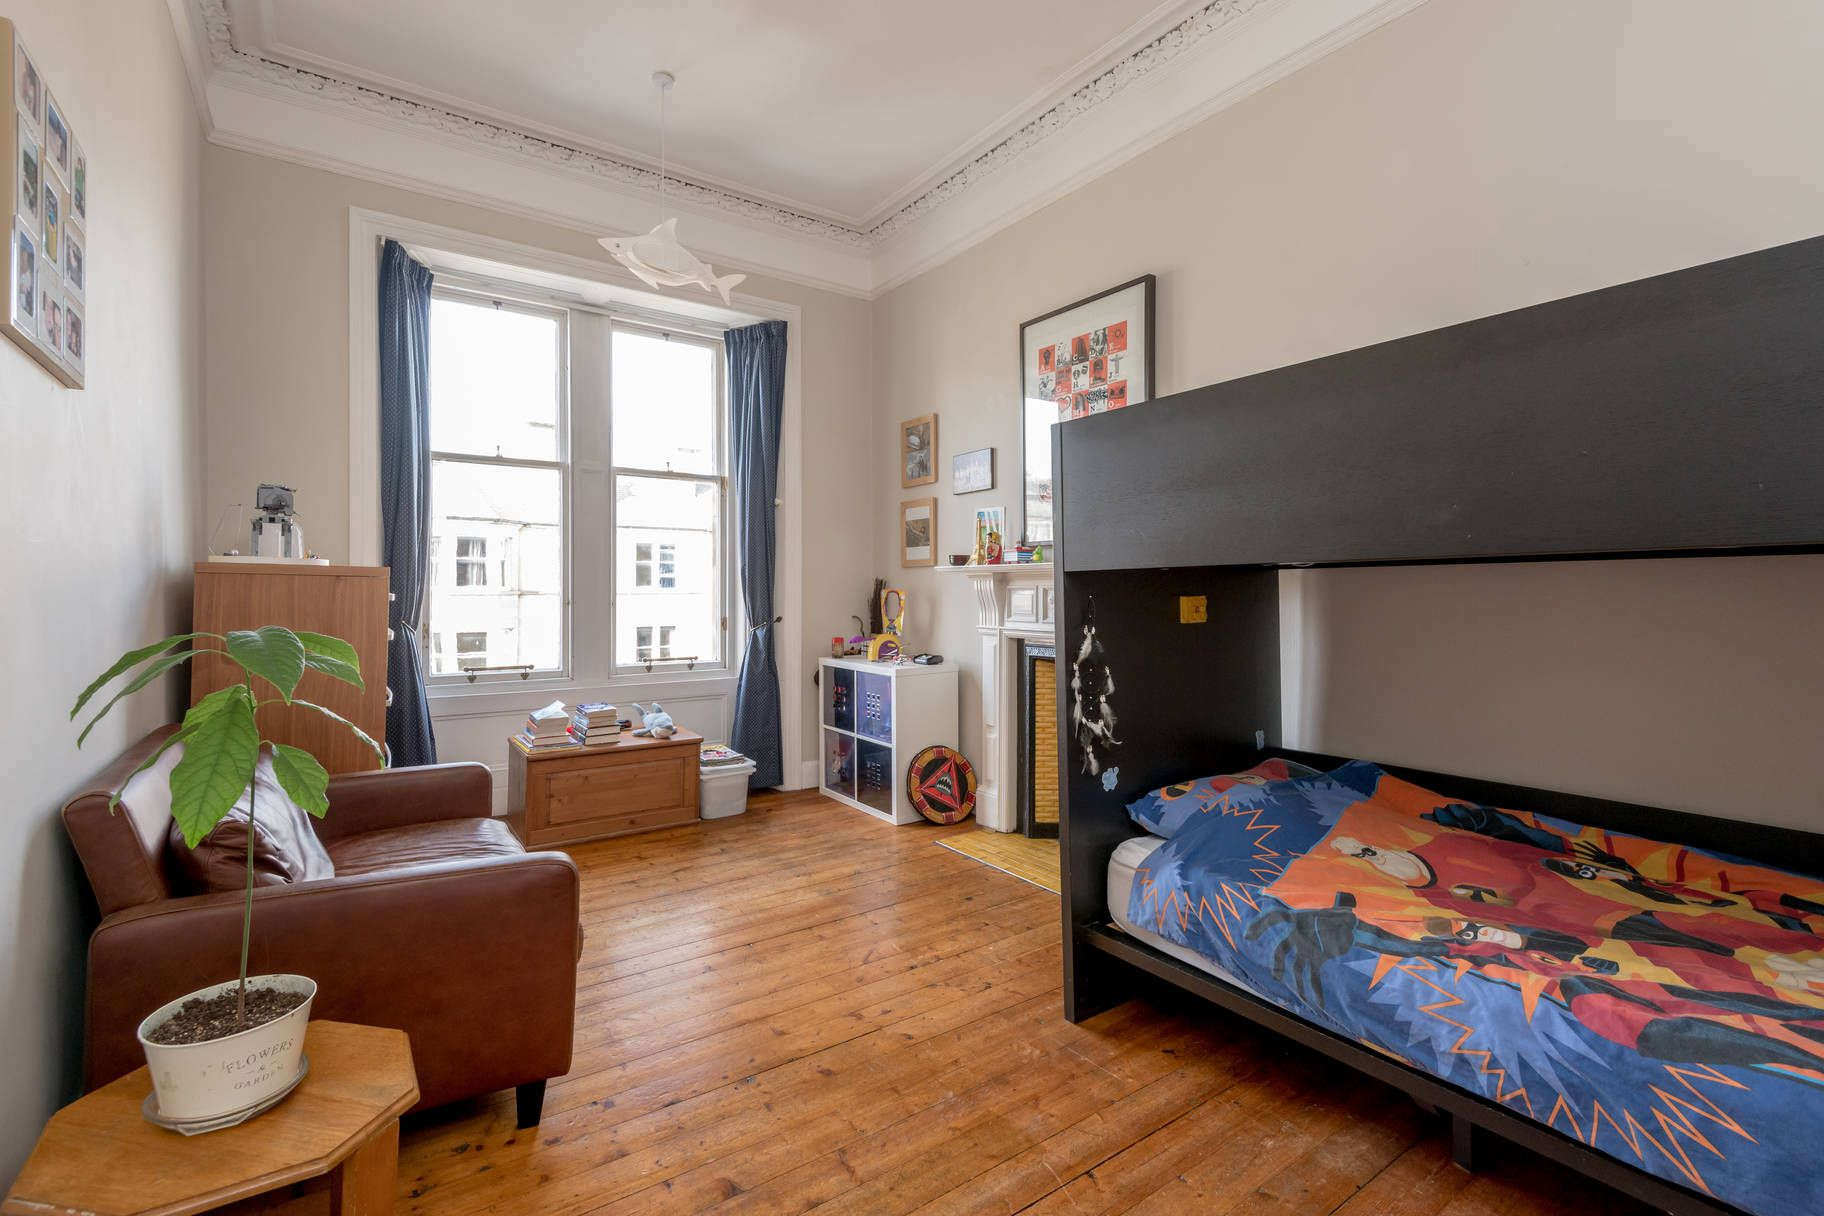 56/5 Spottiswoode Street, Marchmont - Photo 9